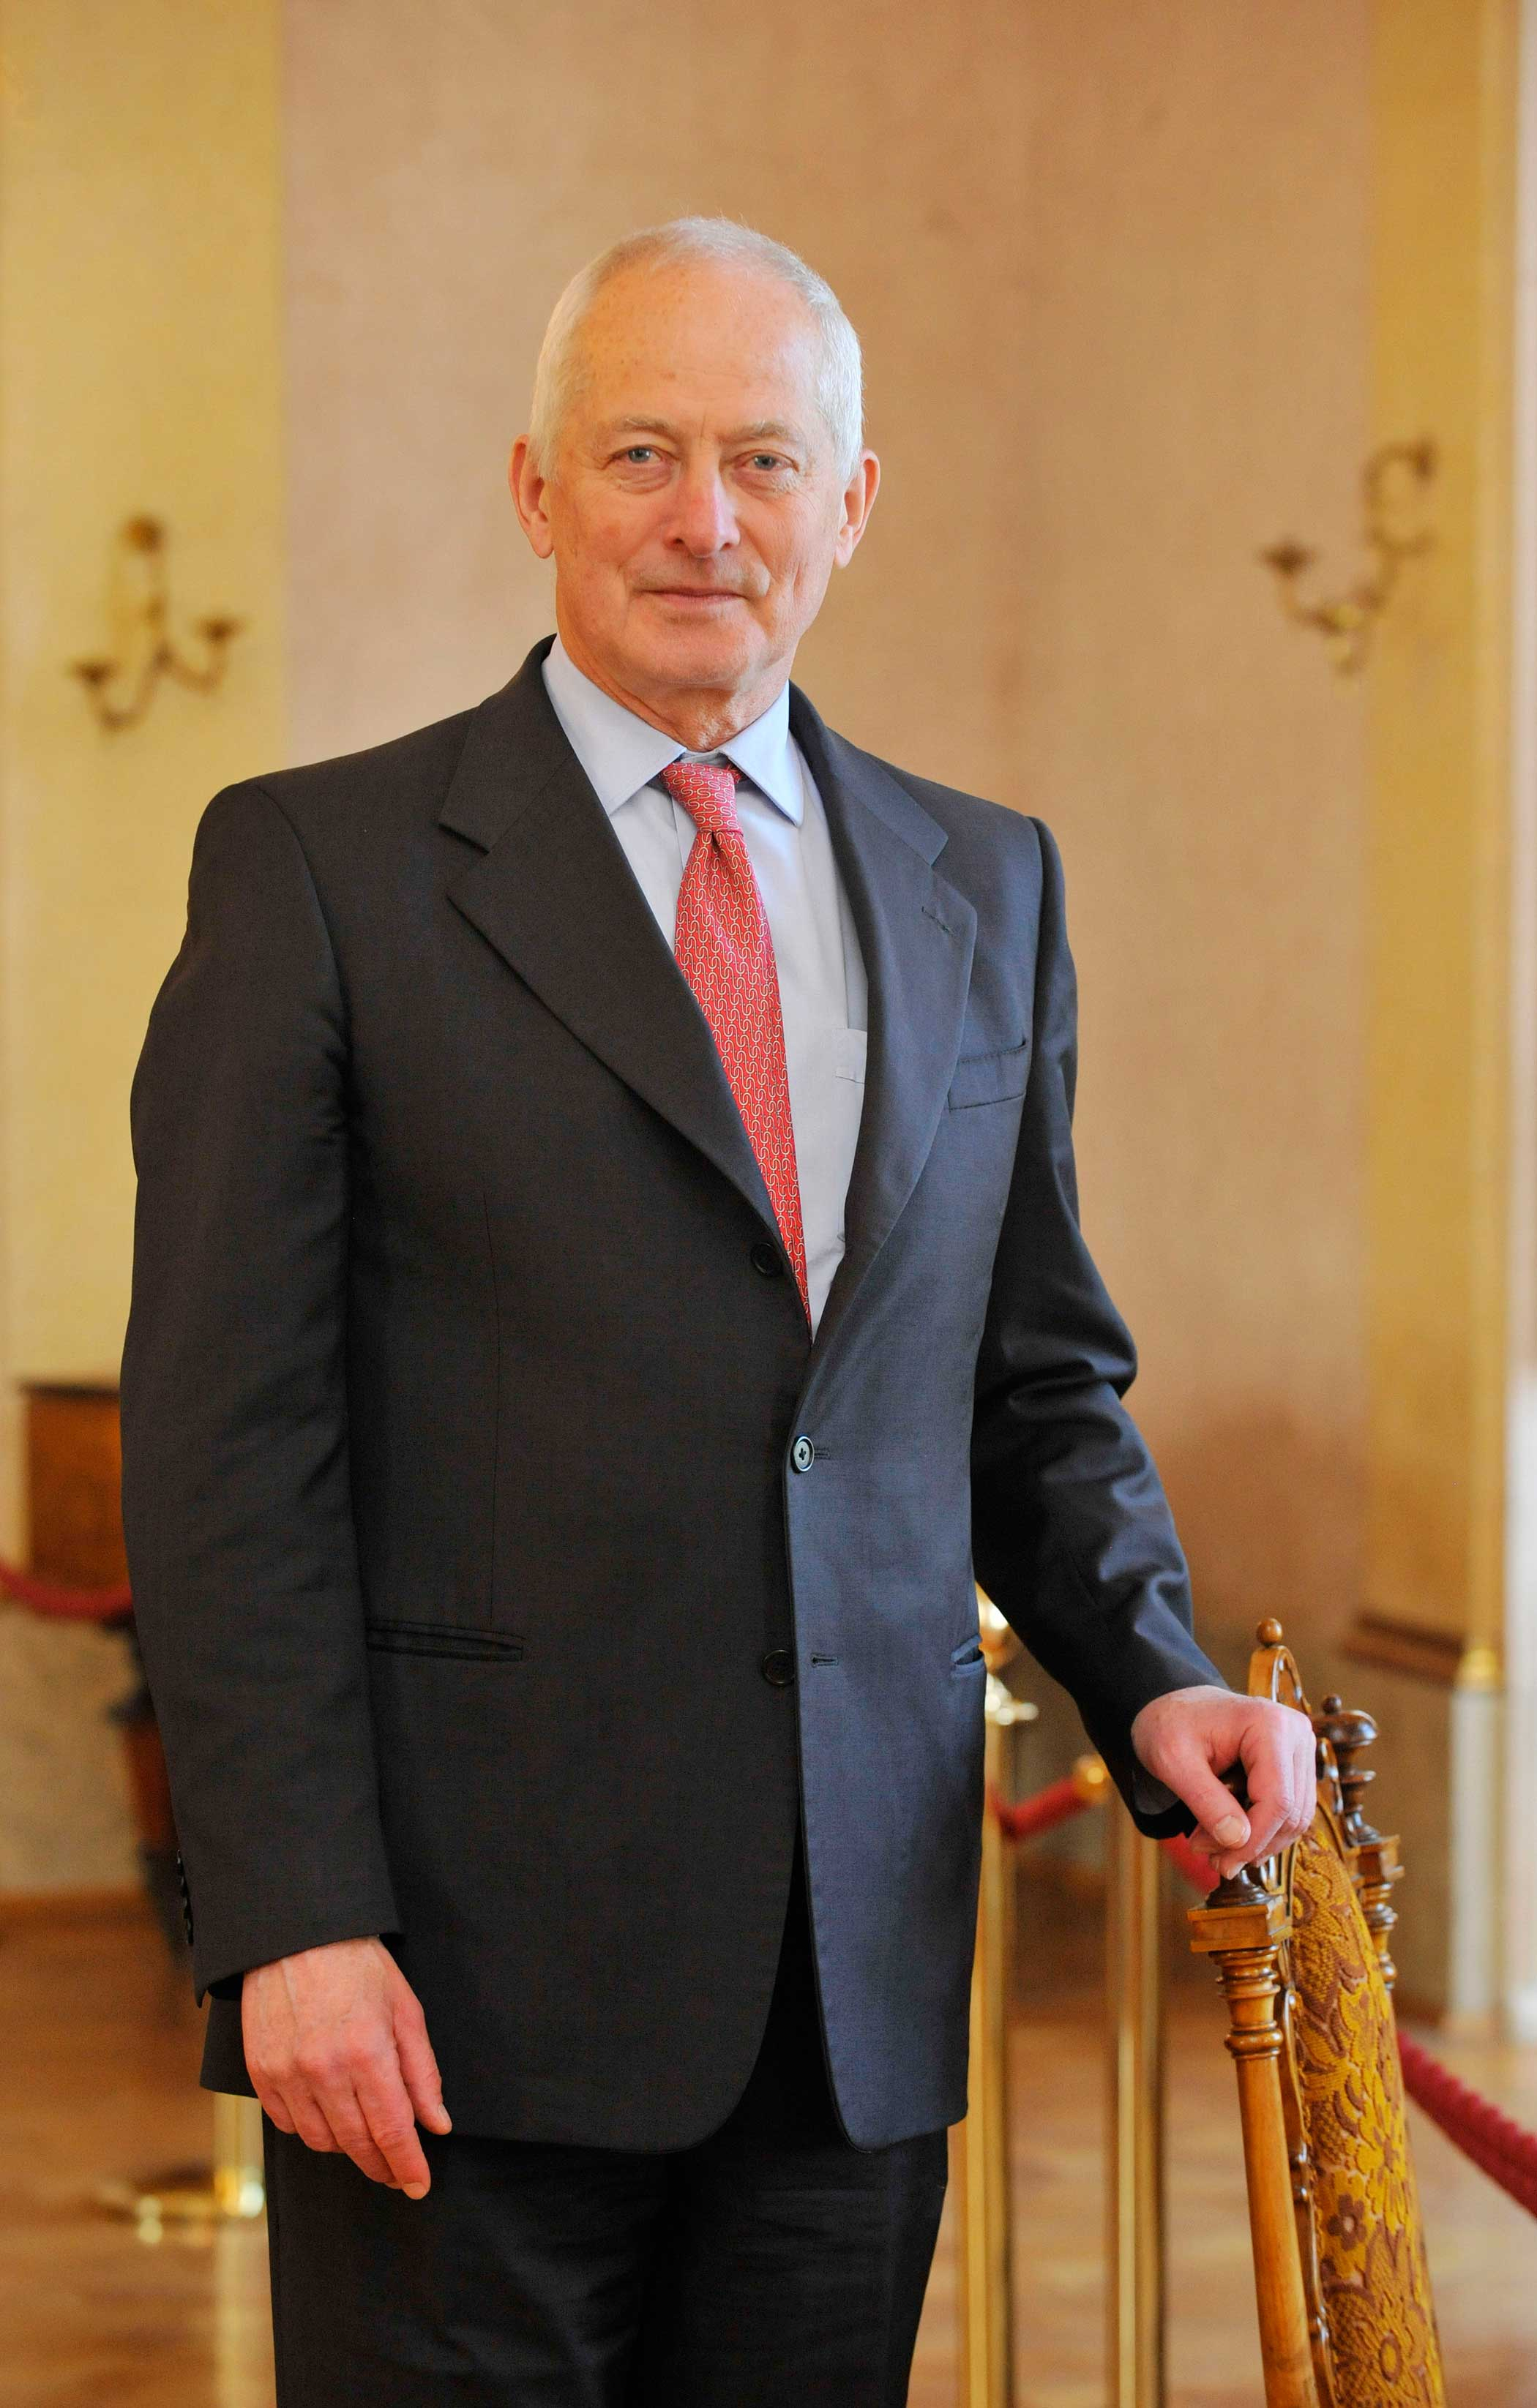 Reigning Prince of Liechtenstein Hans-Adam II is seen during his visit in Olomouc, Czech Republic on May 20, 2014 on the occasion of the presentation of proceedings of international scientific conference titled Princely House of Liechtenstein family in the history of the Czech lands.